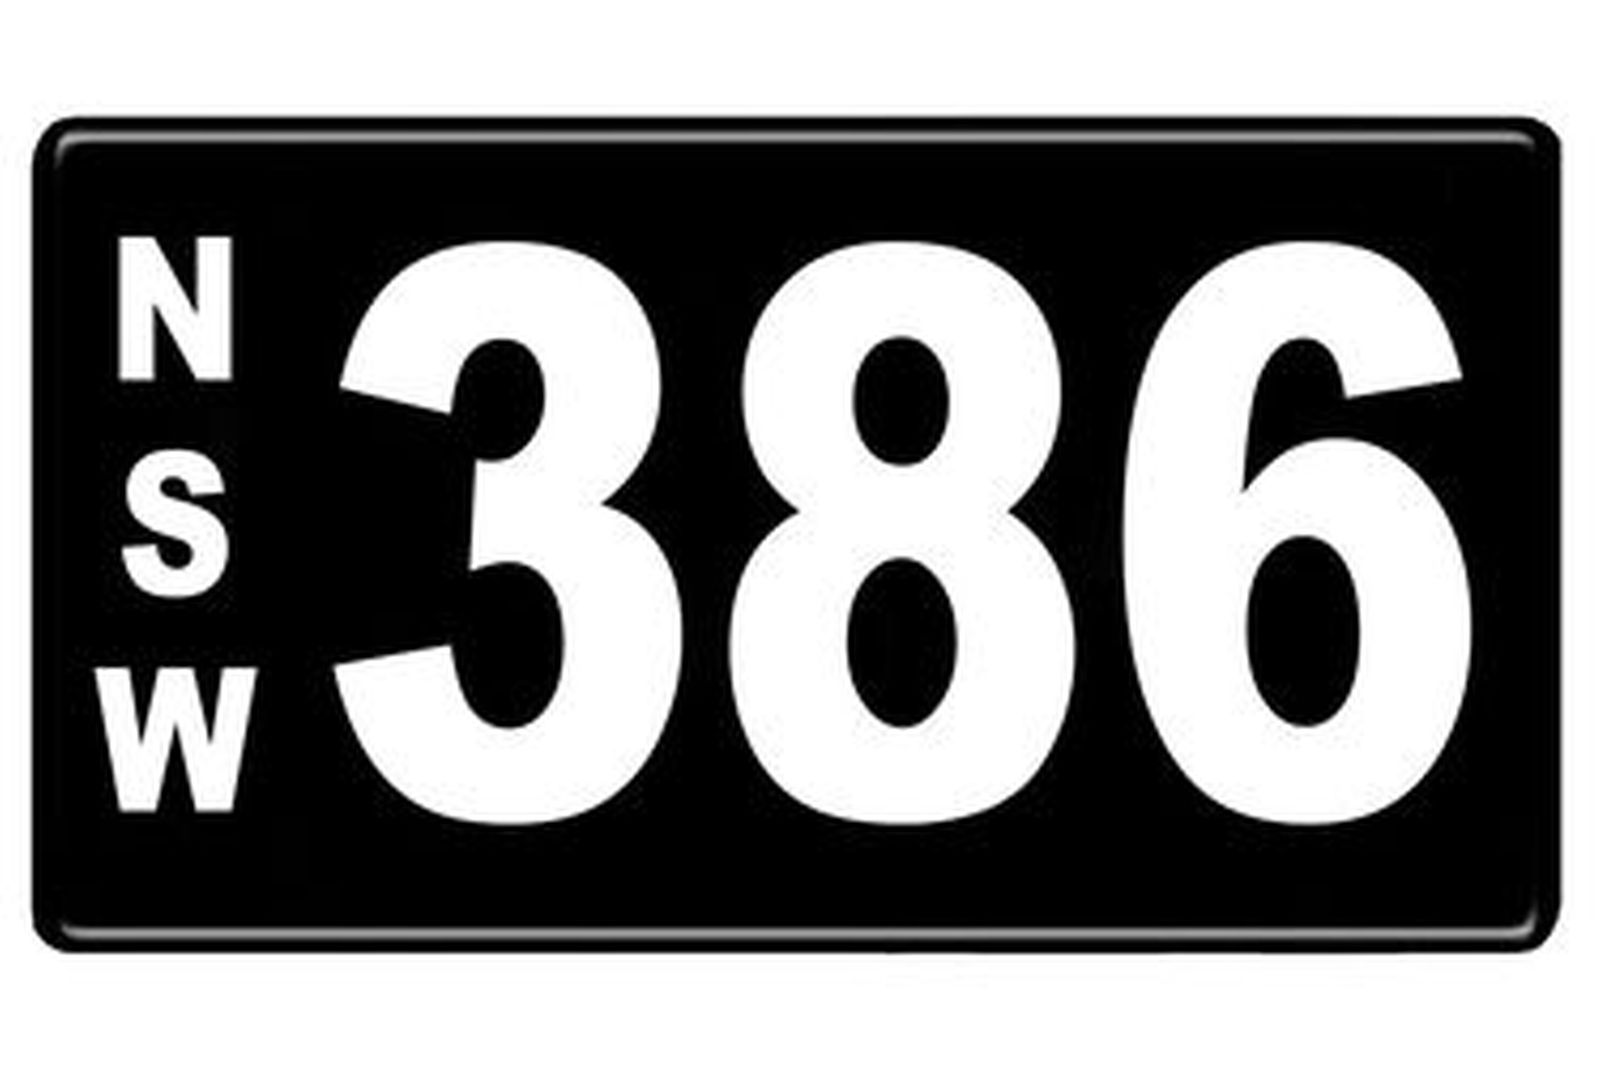 NSW Numerical Number Plates '386'